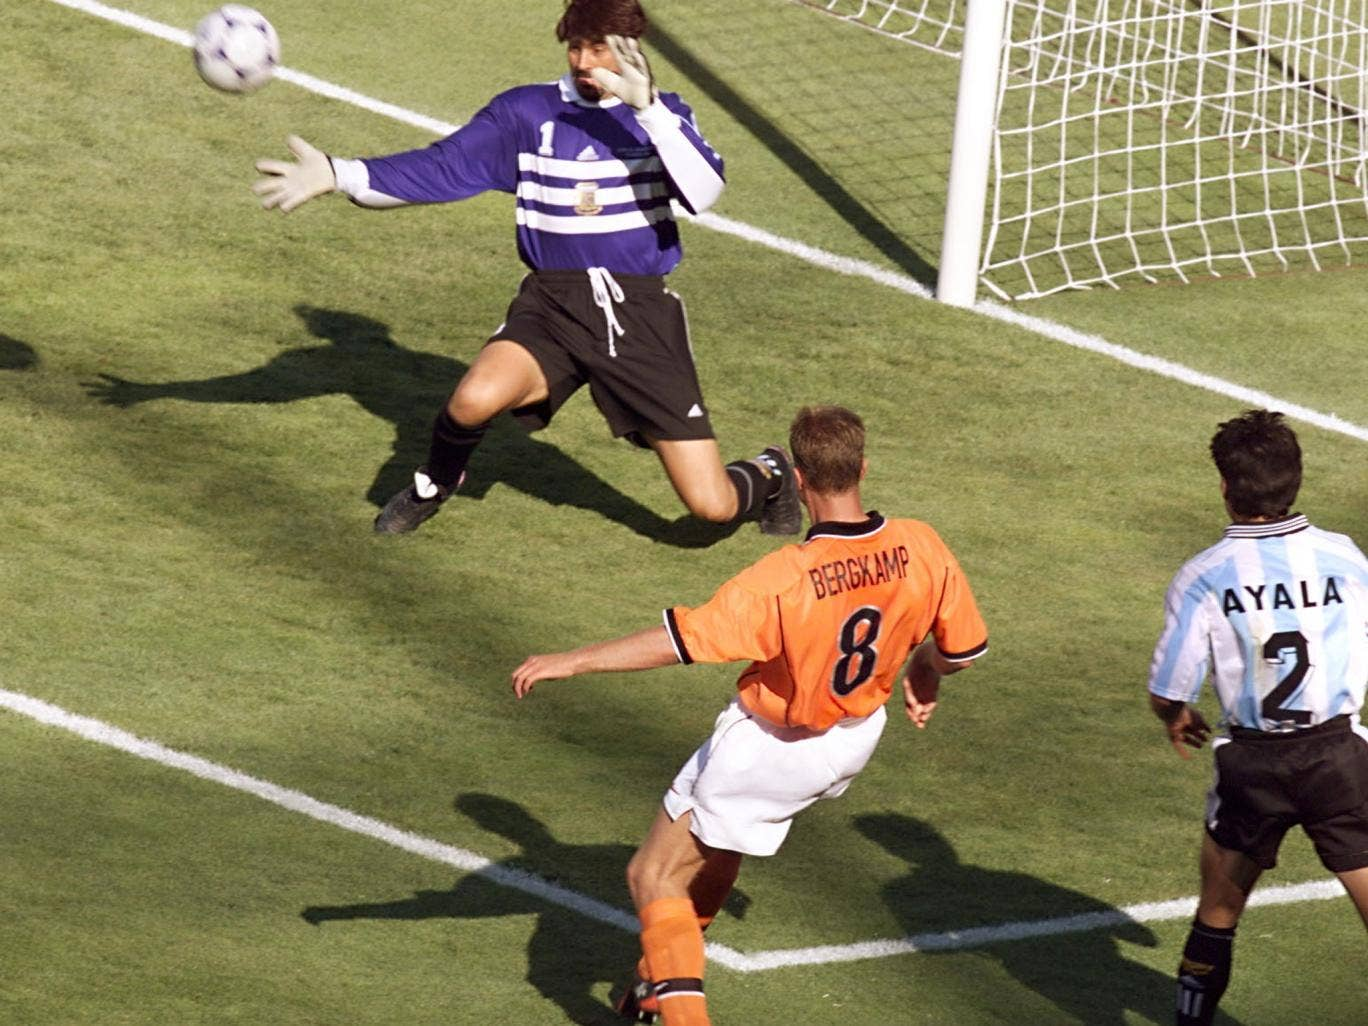 Dennis Bergkamp scored one of the greatest goals in World Cup history to knock Argentina out in 1998